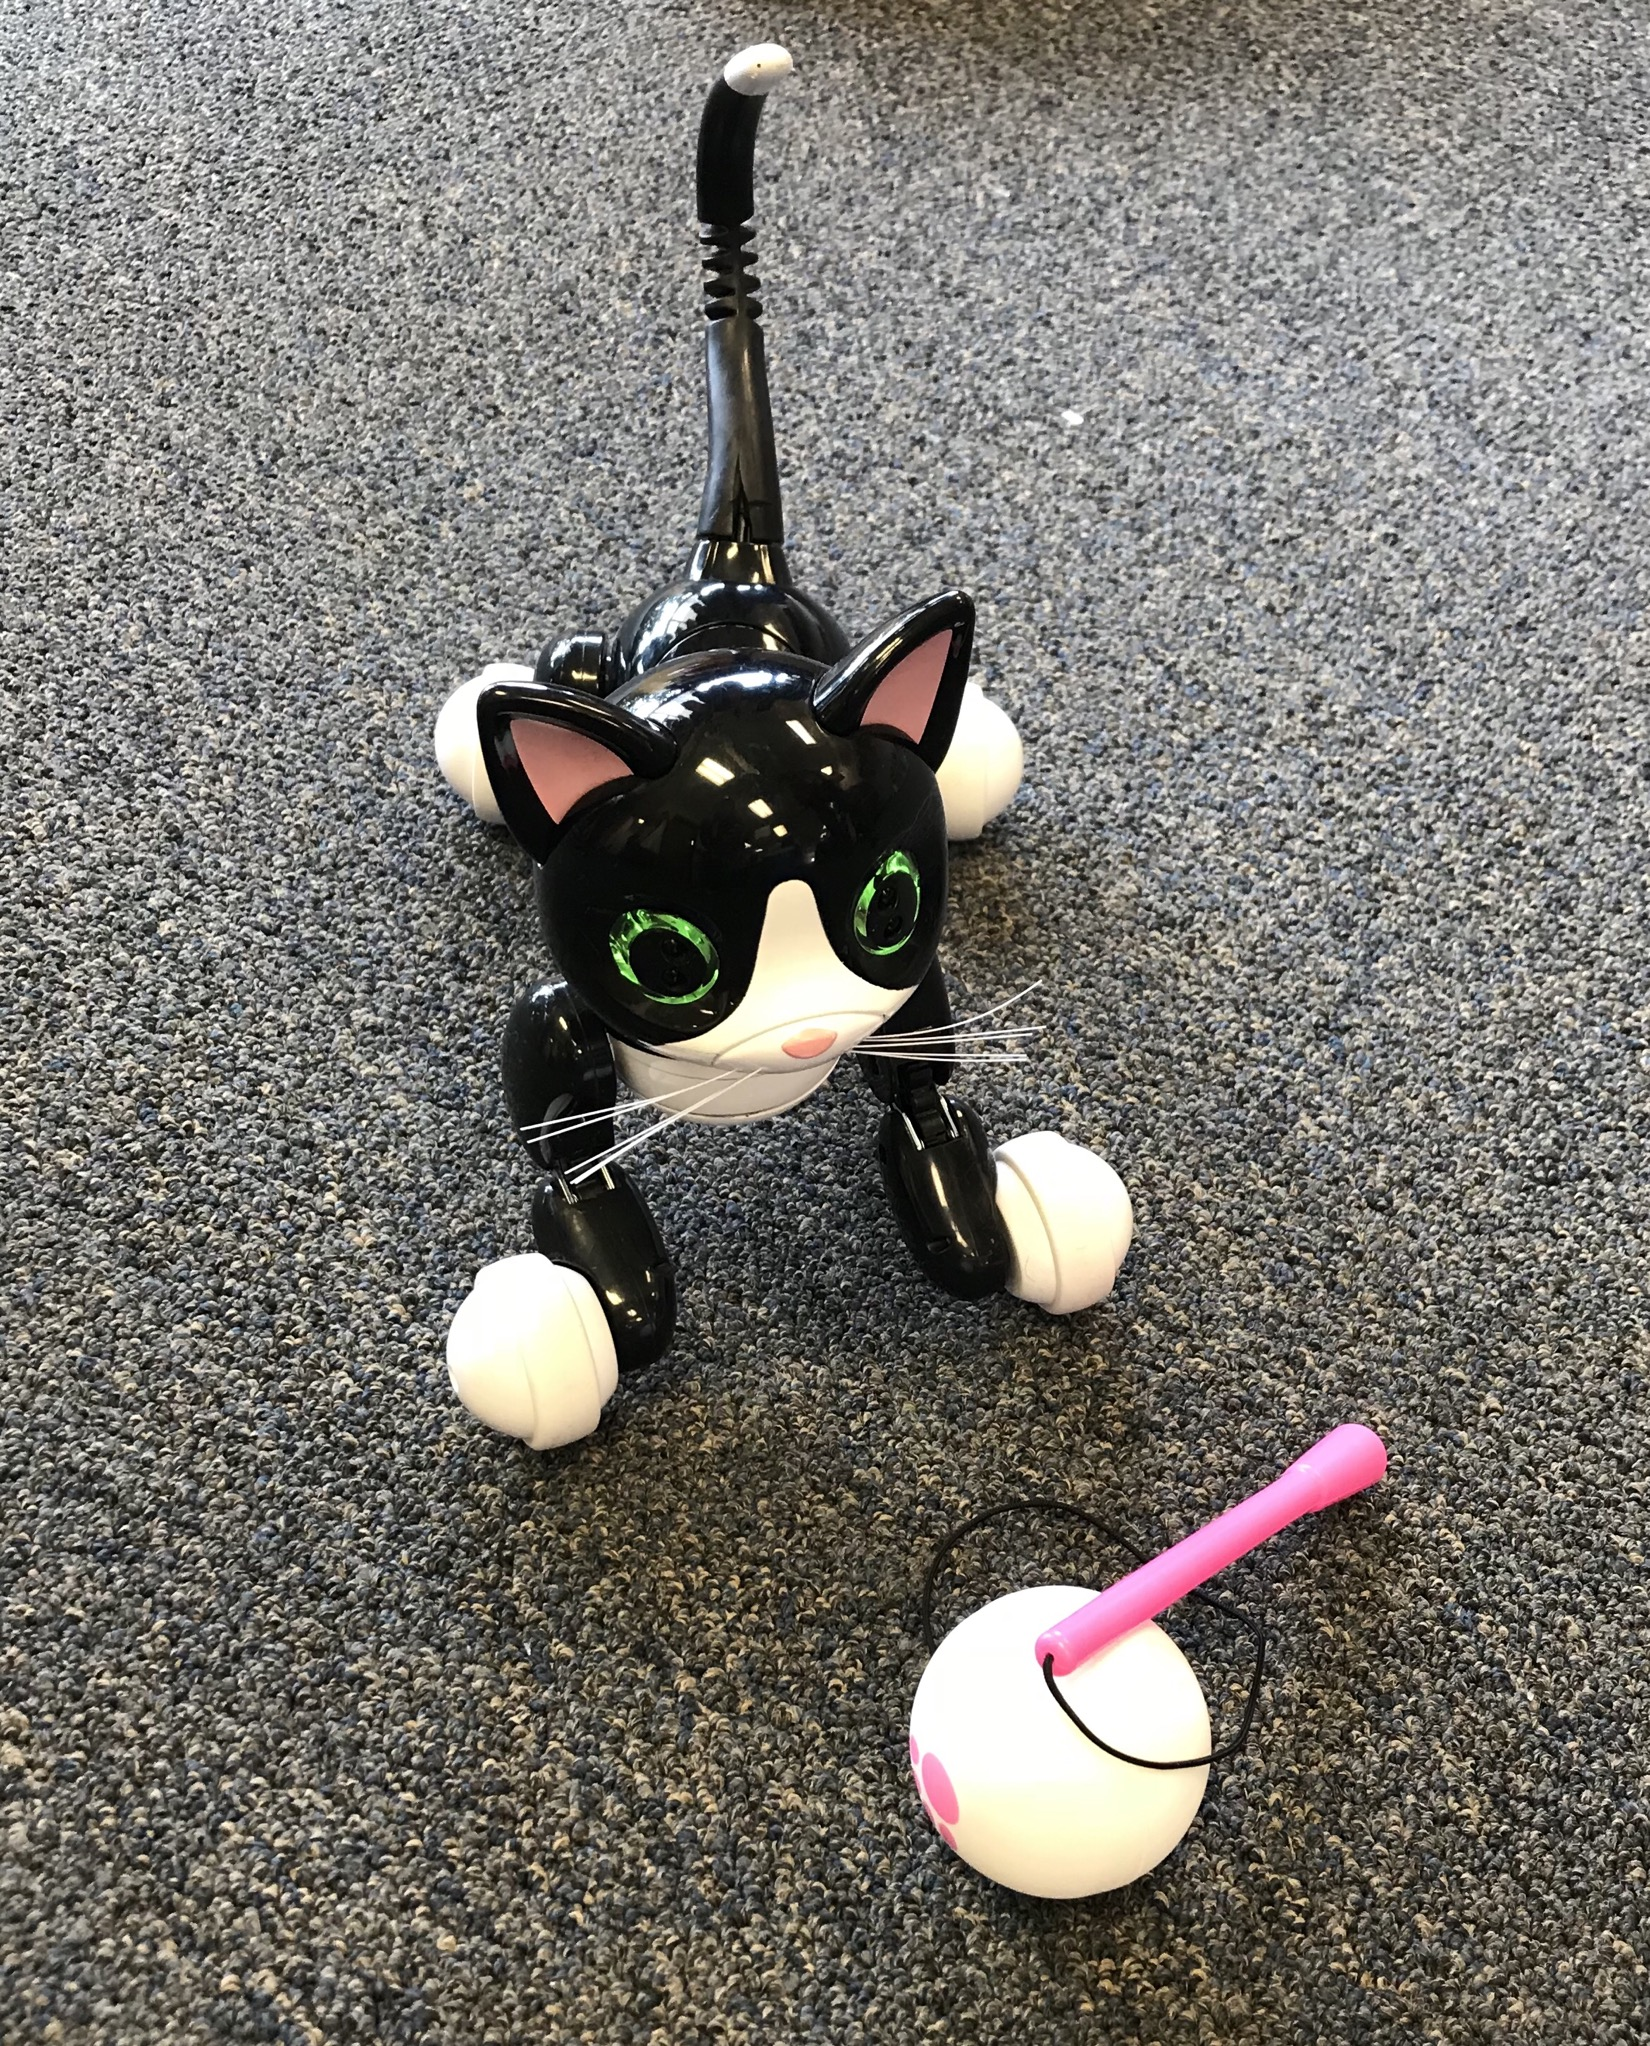 Roblox Zoomer Kitty interactive cat with ball and charger.  Interactive:makes sounds, moves, follows ball.  NO SHIPPING-in store pick up only